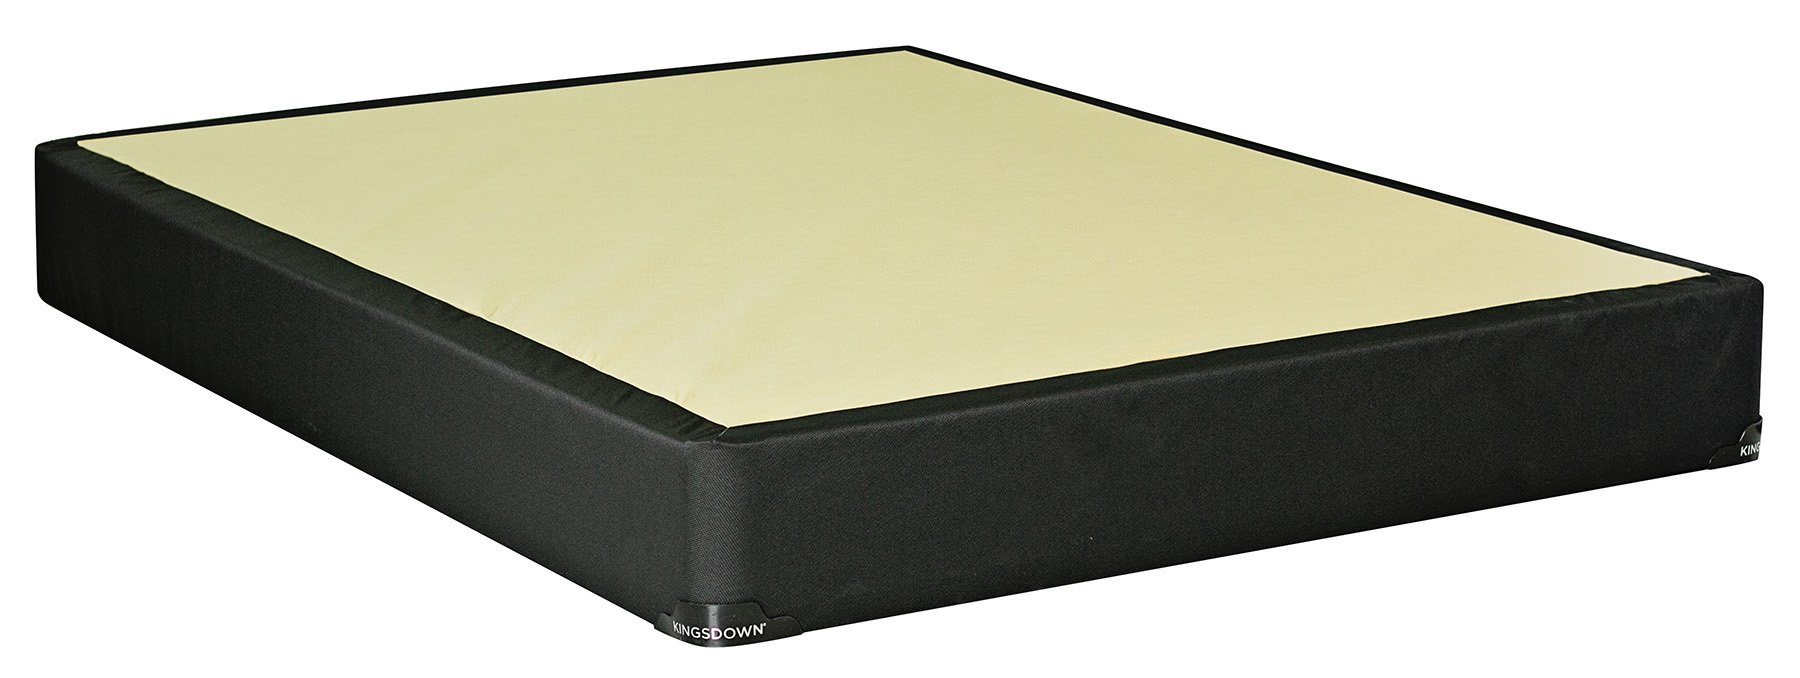 Kingsdown Passions Standard 9'' Box Spring Foundation, Queen